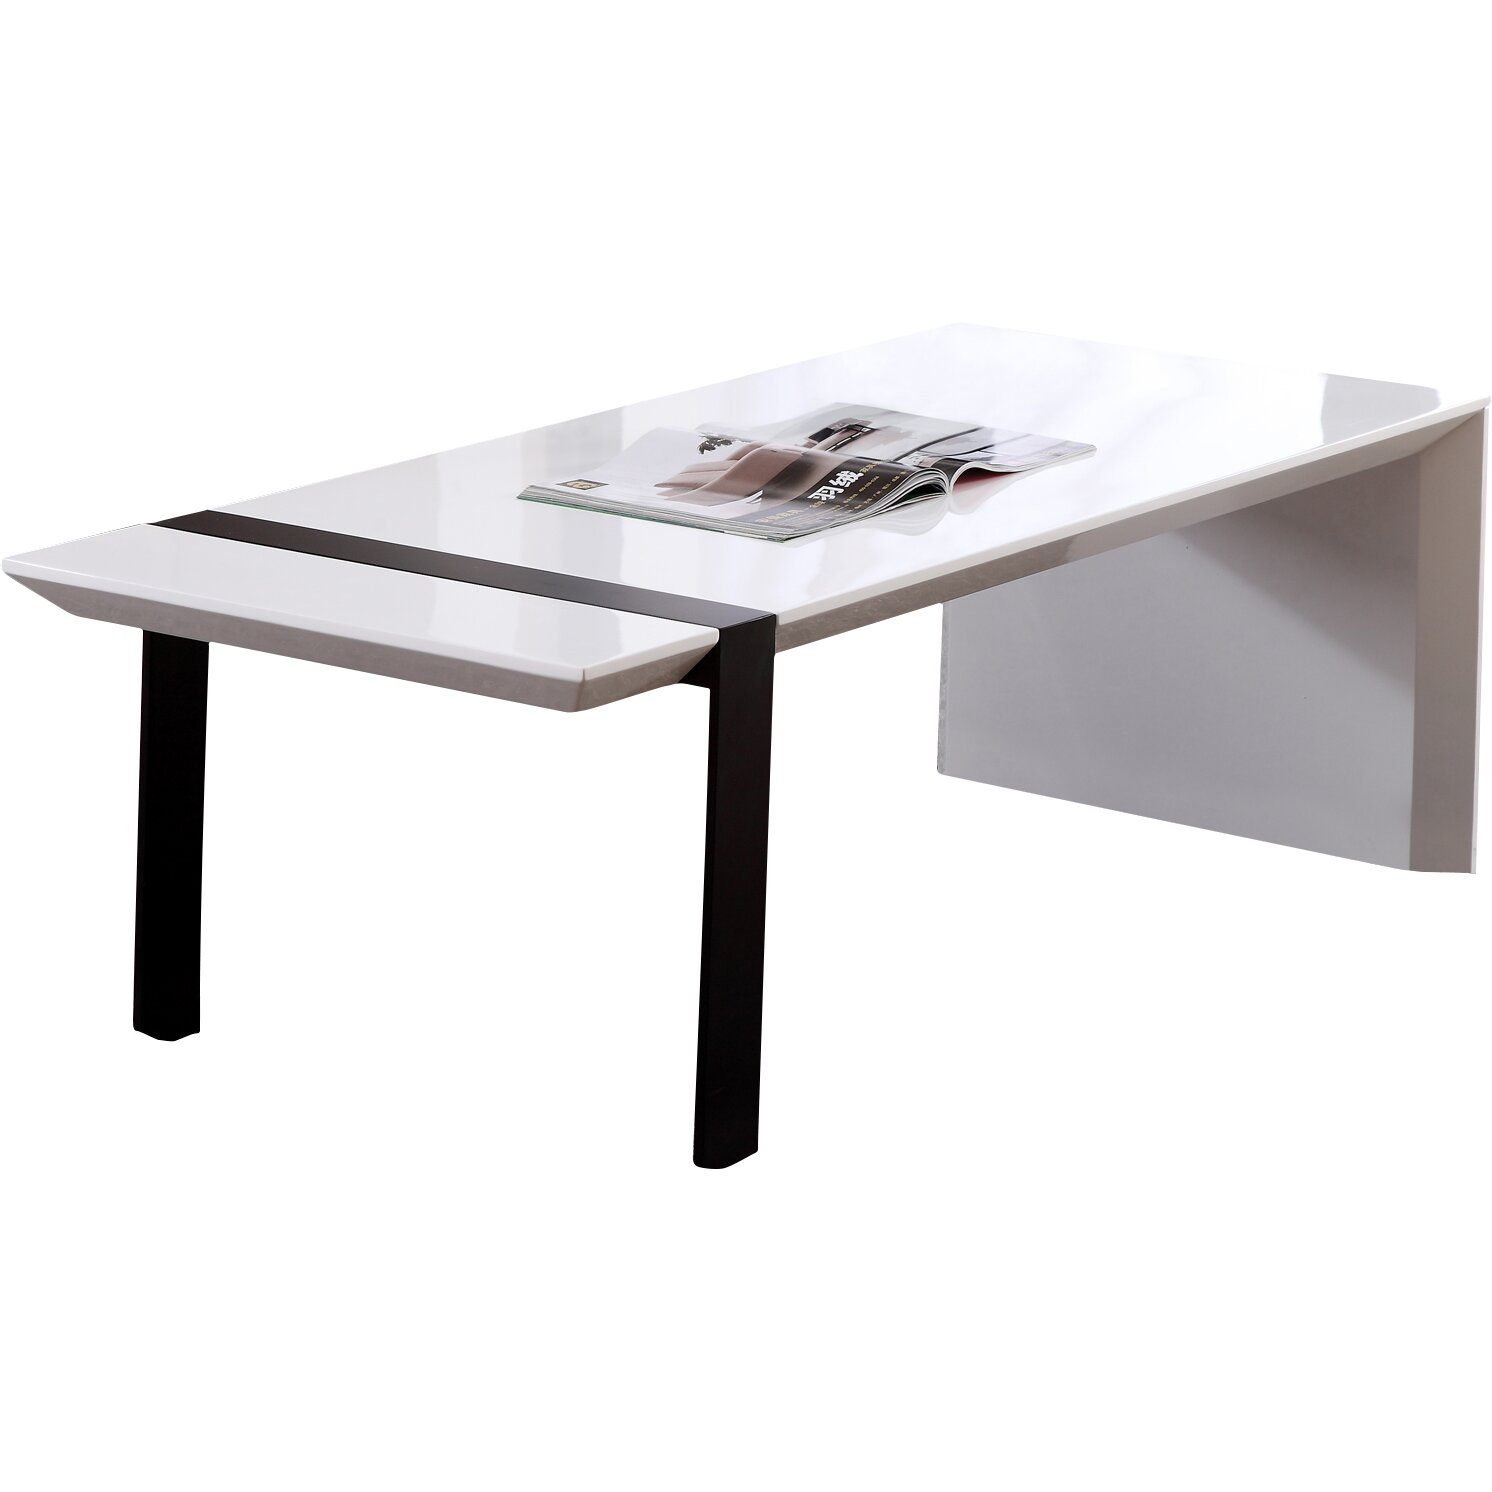 Wayfair Coffee Table Gus Metric Coffee Table 28 Plantation Coffee Table Kingstown Plantation